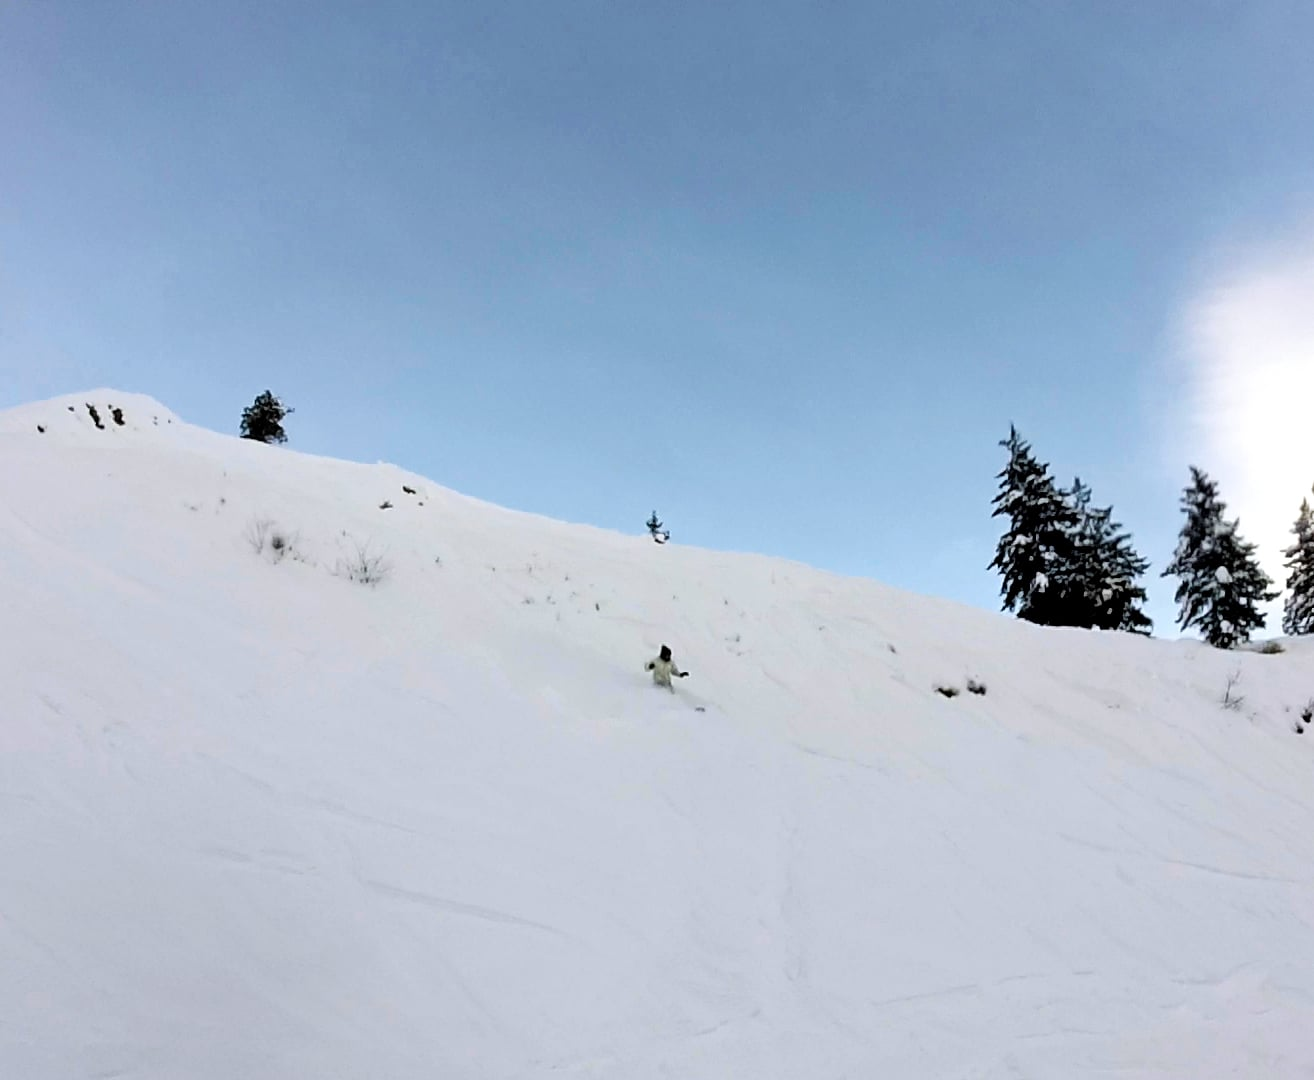 the samoan 12/15 at Sun Valley (which is part of the Mountain Collective)